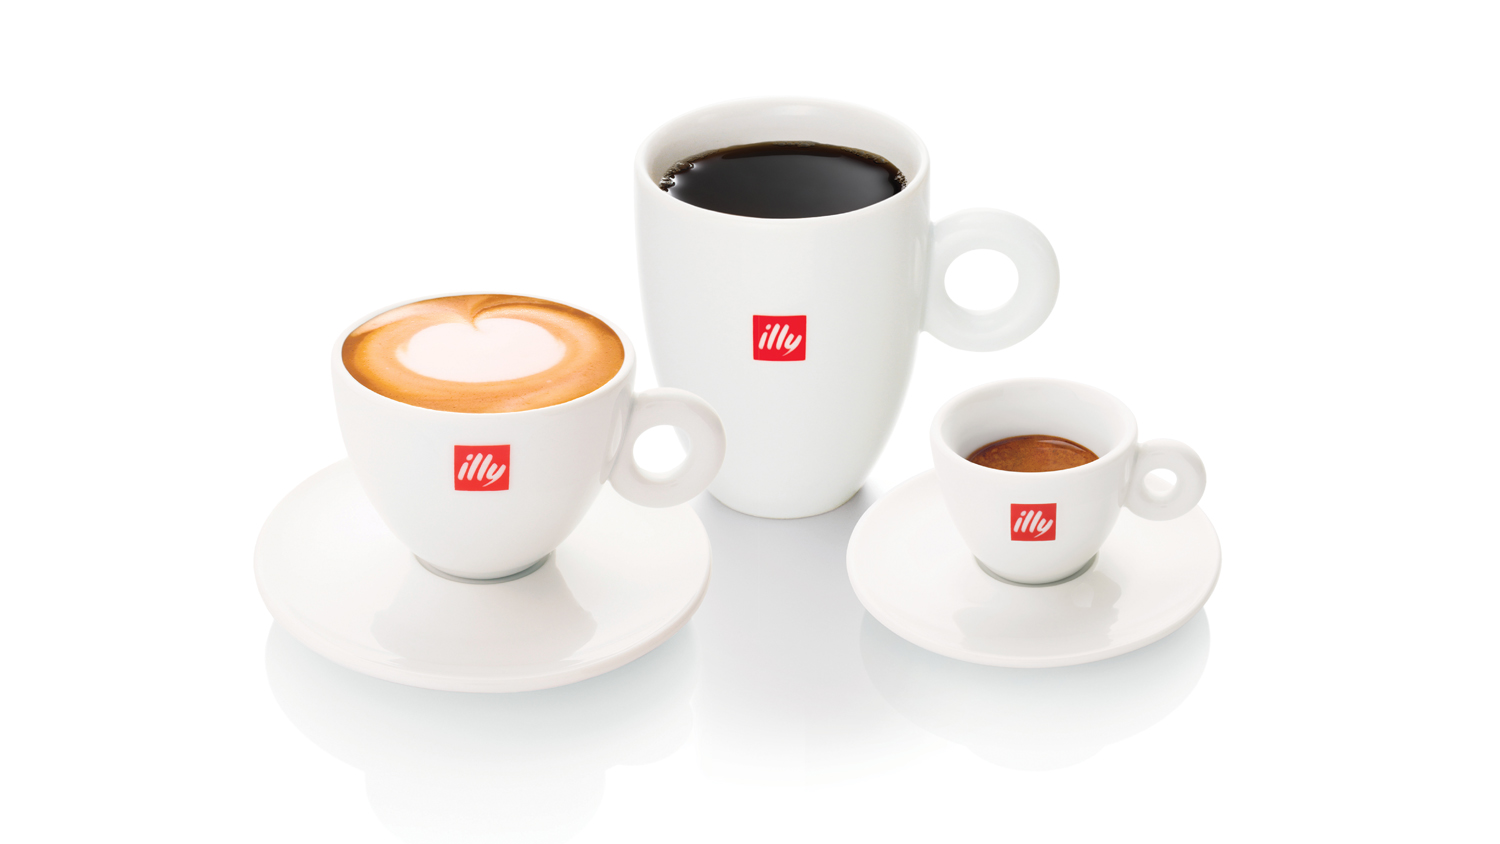 Illy Coffee And Croissant - Angry Moon Cafe, Palm Beach Gardens, FL 33410